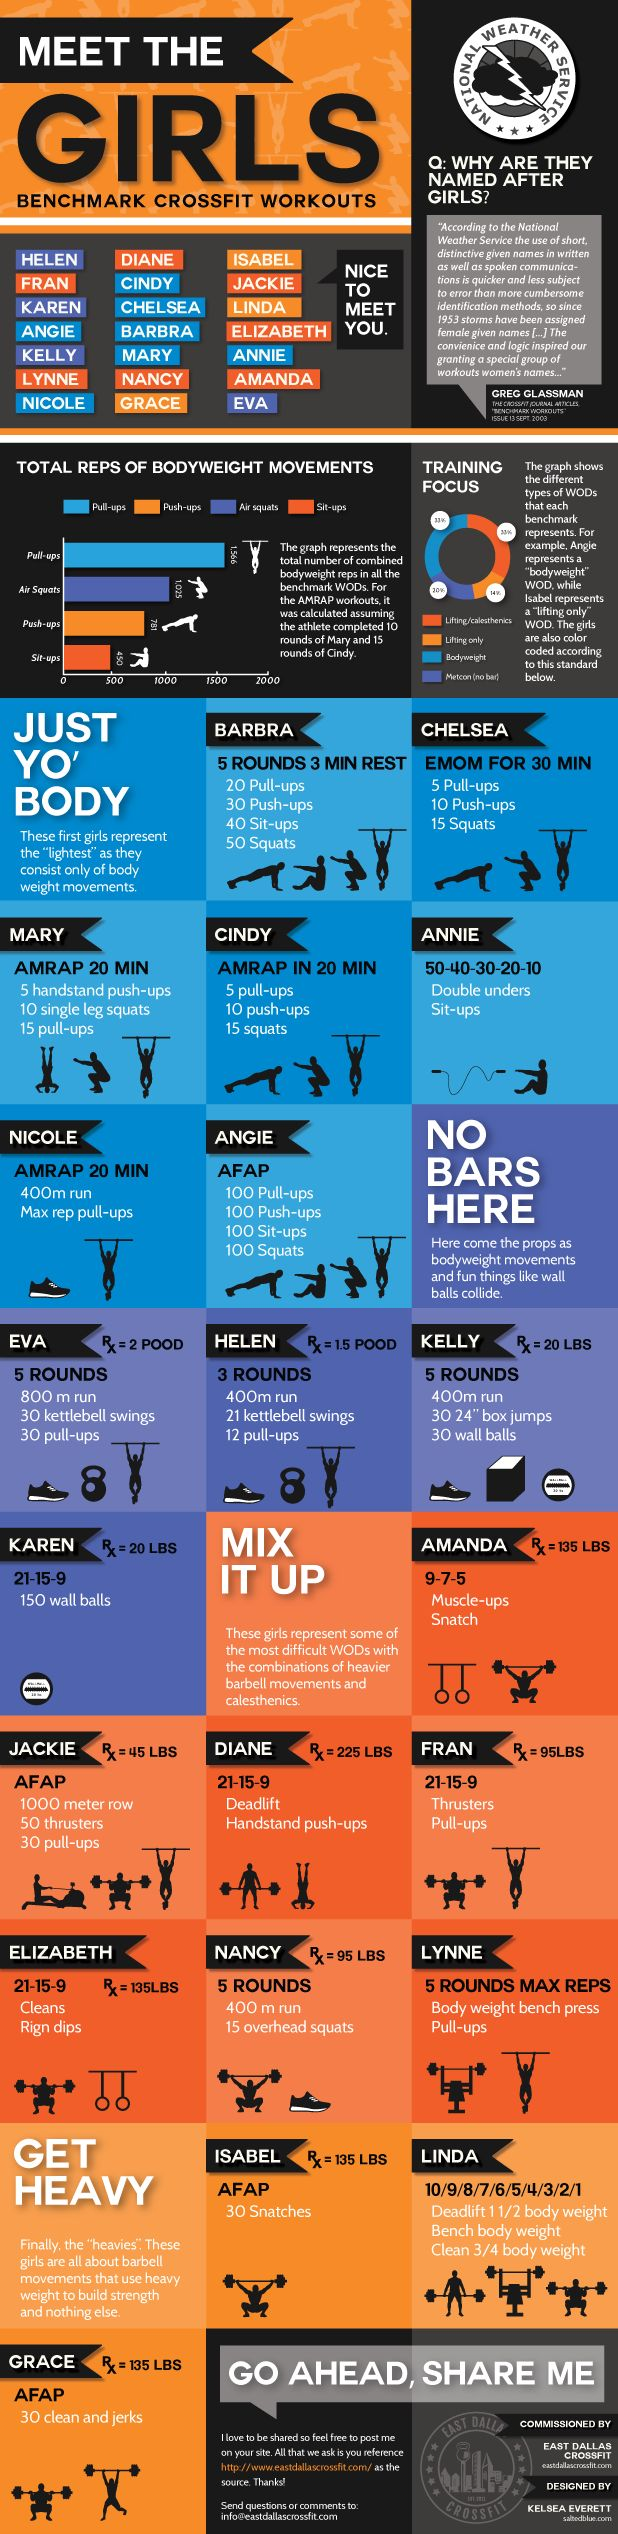 Meet The Girls Benchmark CrossFit Workouts